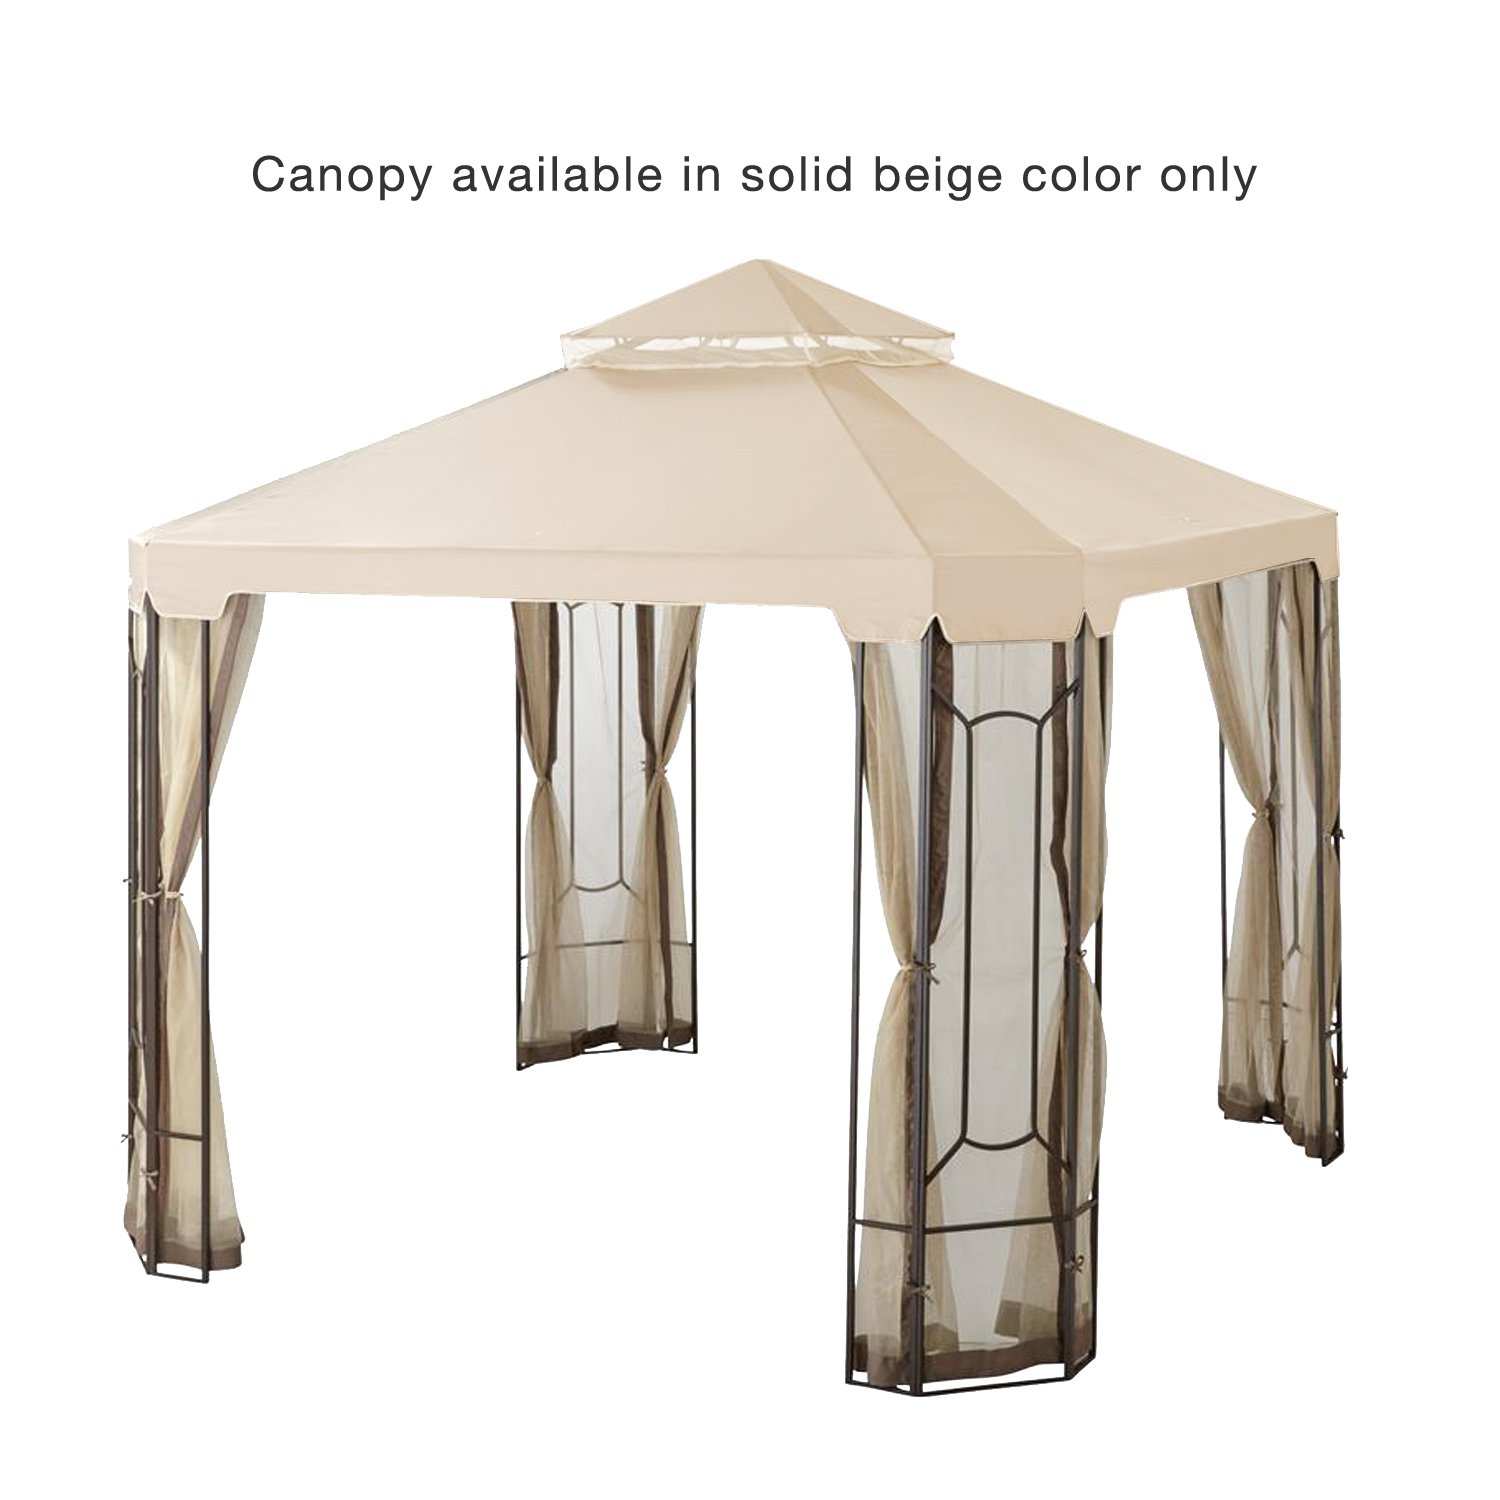 Garden Winds LCM1305B-RS Top Cover for The Cottleville Gazebo-RipLock 350 Replacement Canopy, 10 x 12 Beige